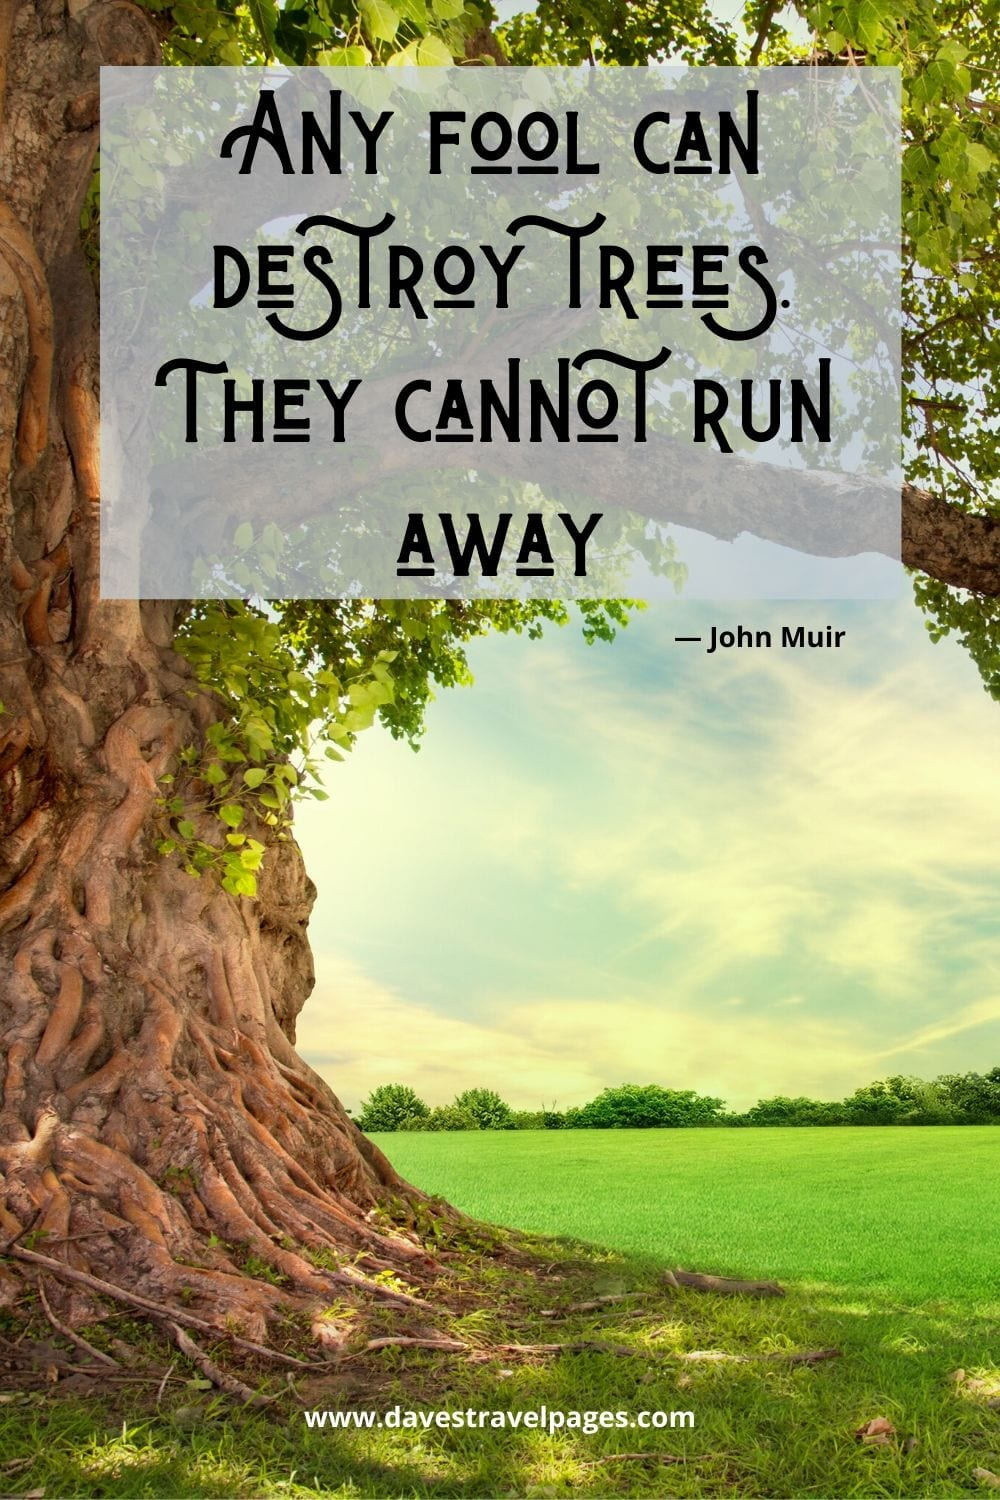 """Quotes about nature: """"Any fool can destroy trees. They cannot run away."""" ― John Muir"""